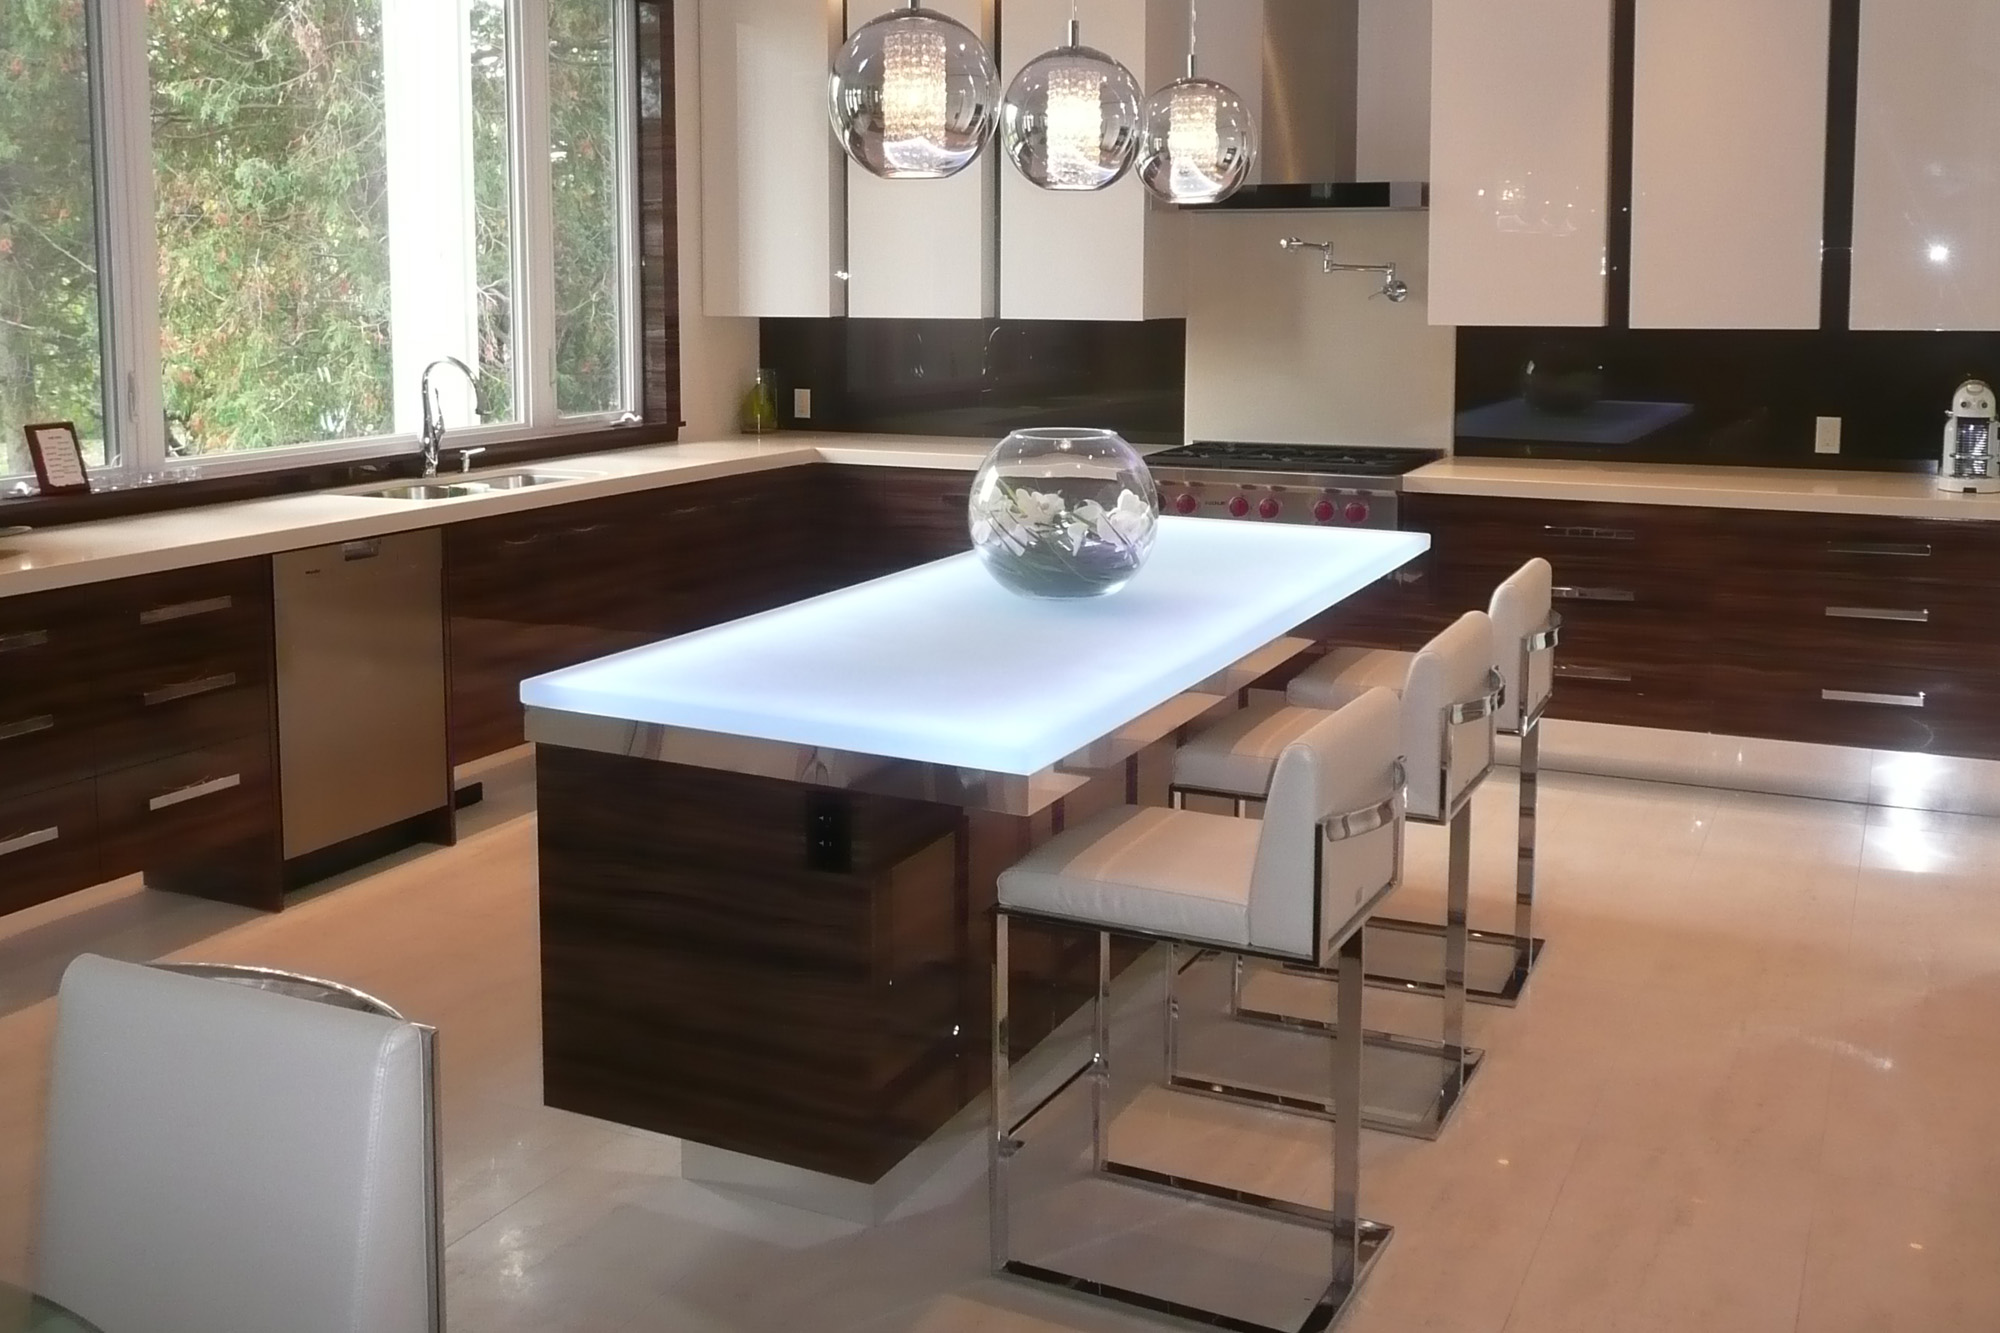 6 popular glass countertop types kitchen island countertop Glass Kitchen Island Countertop kitchenisland3